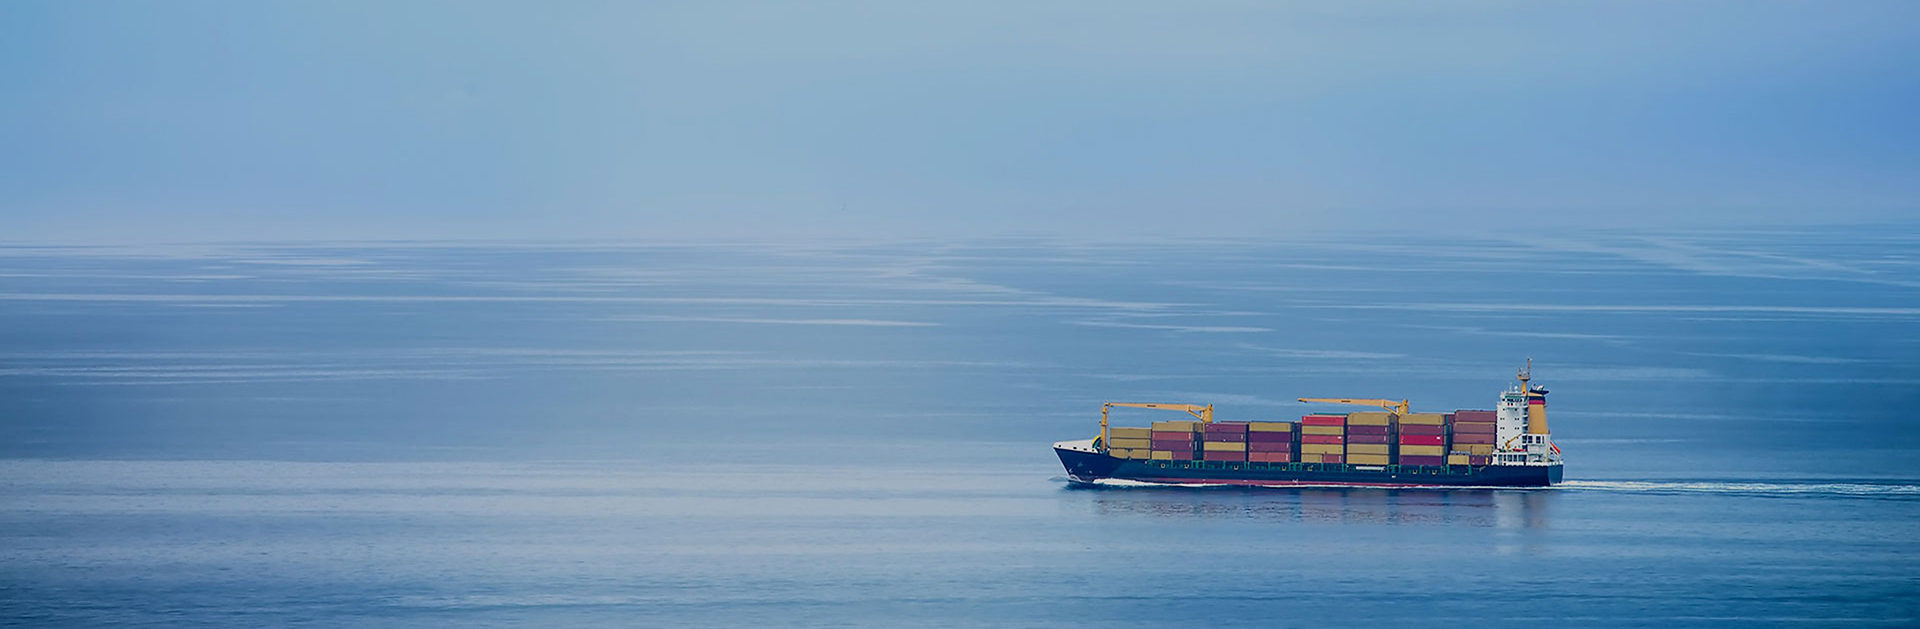 Ocean Insights Innovators in Container Tracking